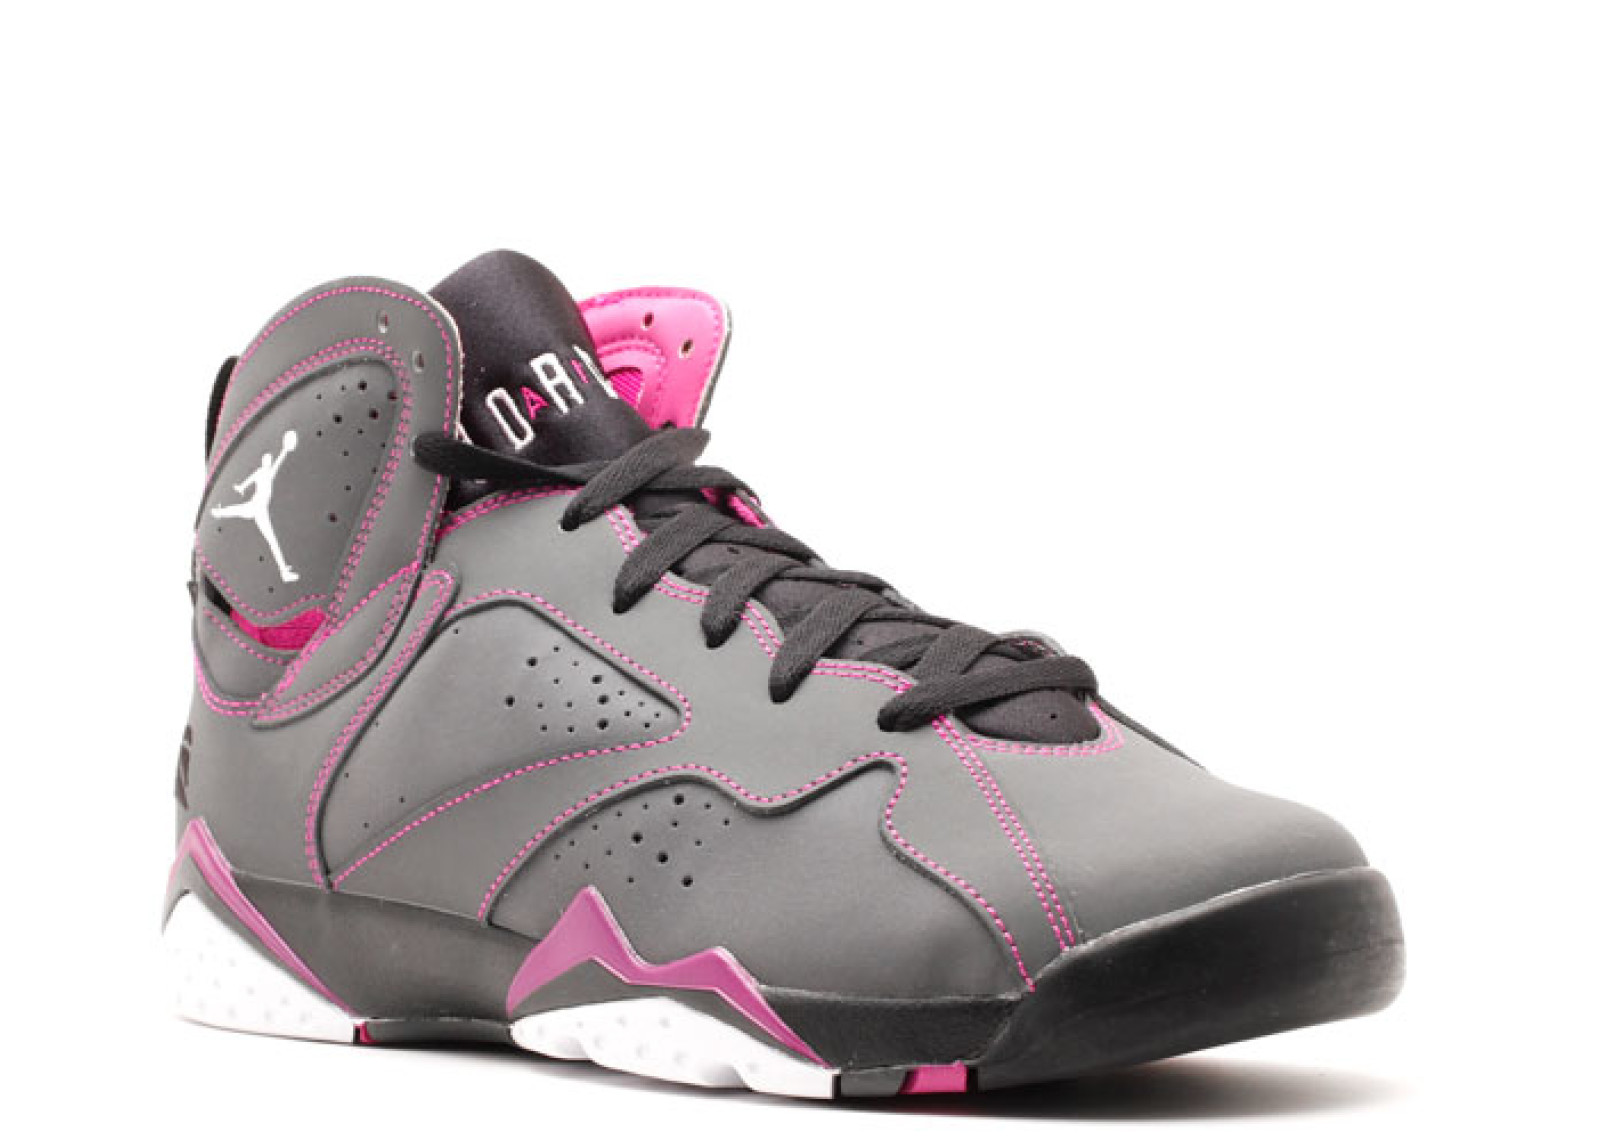 finest selection 14f1a b50a2 ... sale air jordan 7 retro 30th gg valentines day 705417 016 walmart a469c  6a331